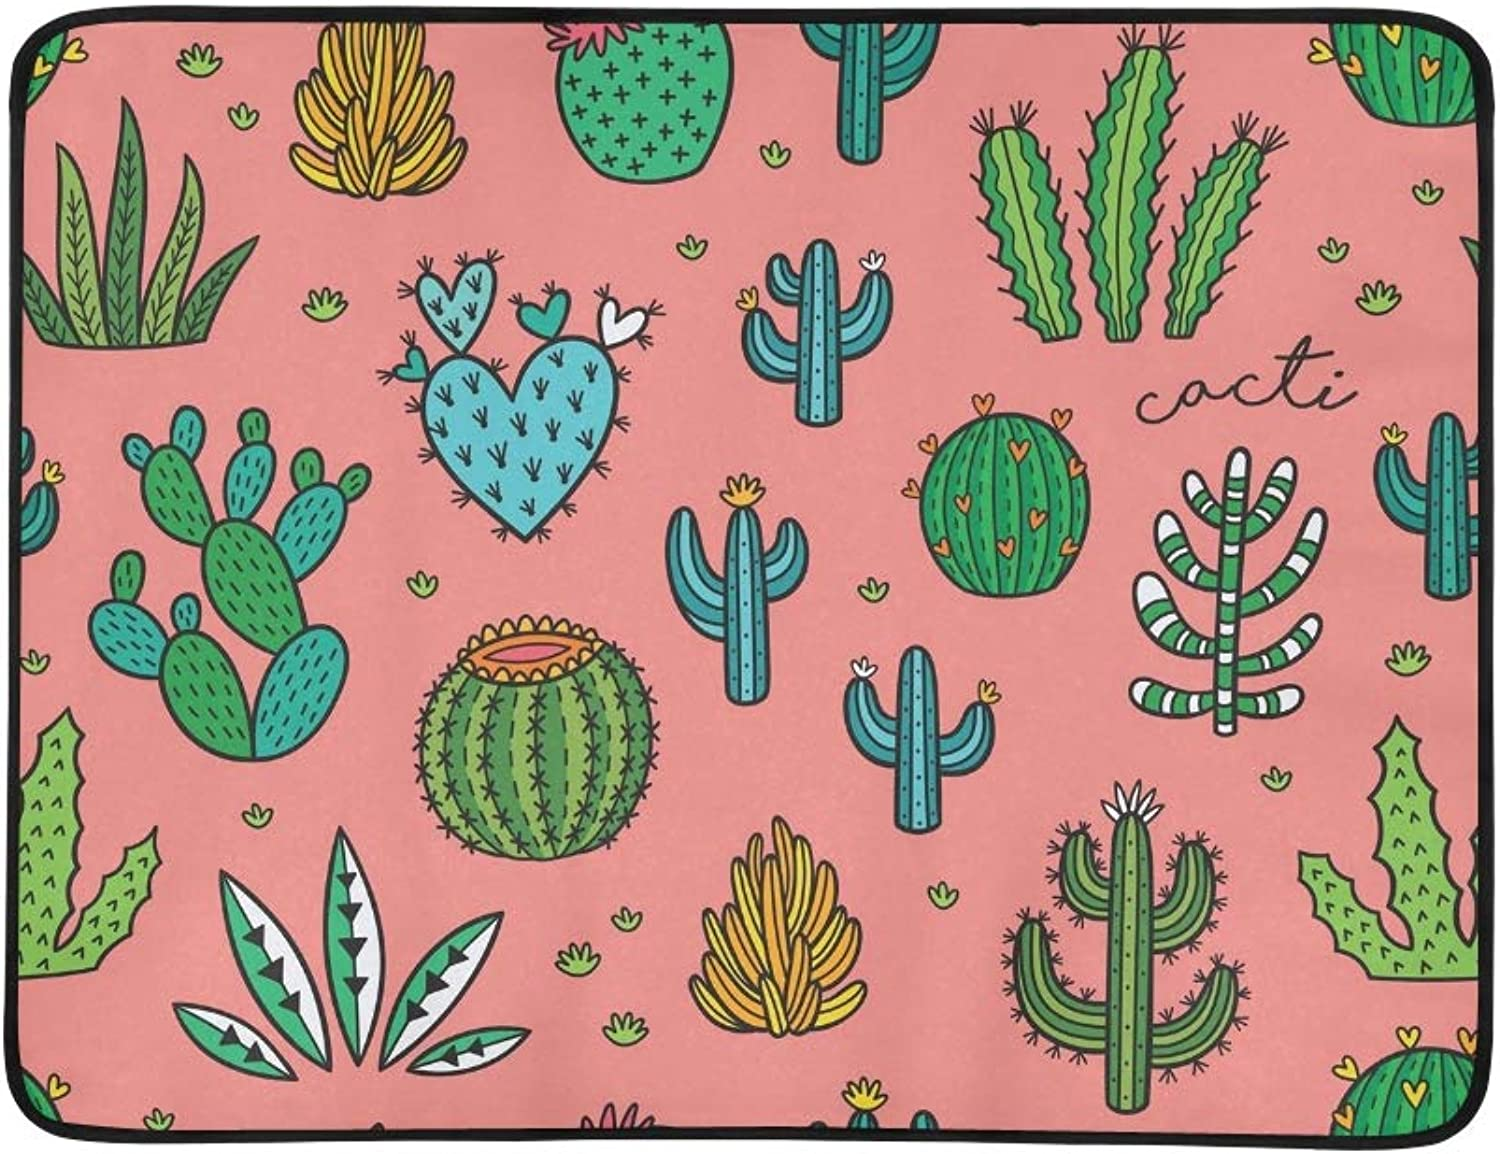 Cacti Ornament colorful Hand Drawn Portable and Foldable Blanket Mat 60x78 Inch Handy Mat for Camping Picnic Beach Indoor Outdoor Travel